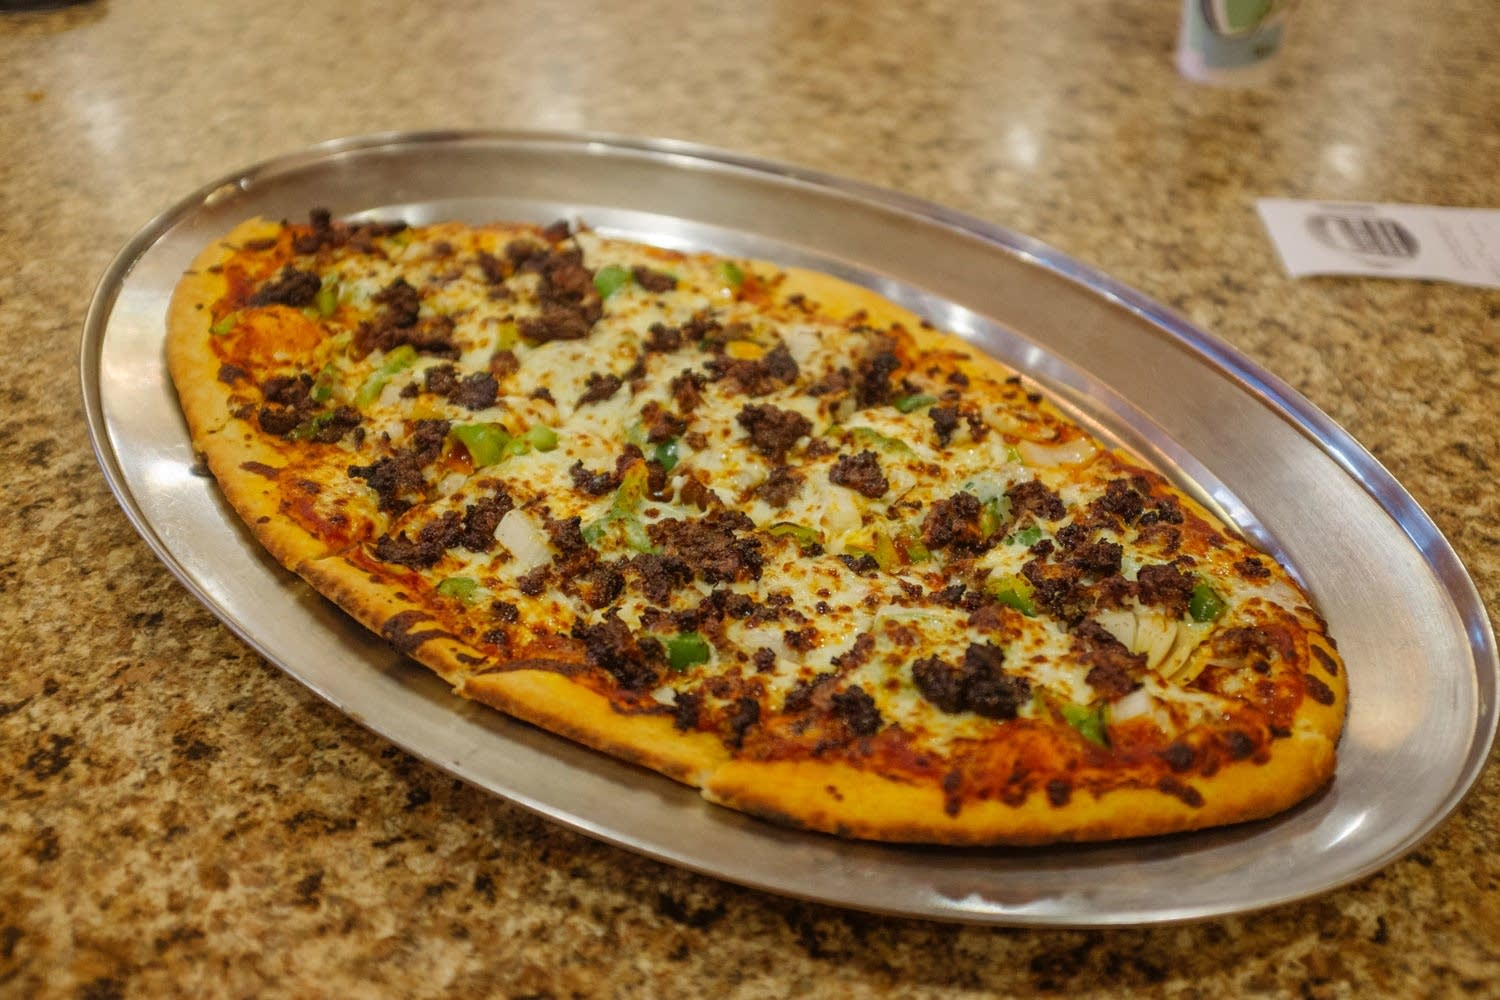 Crescent Moon Bakery Football Pizza